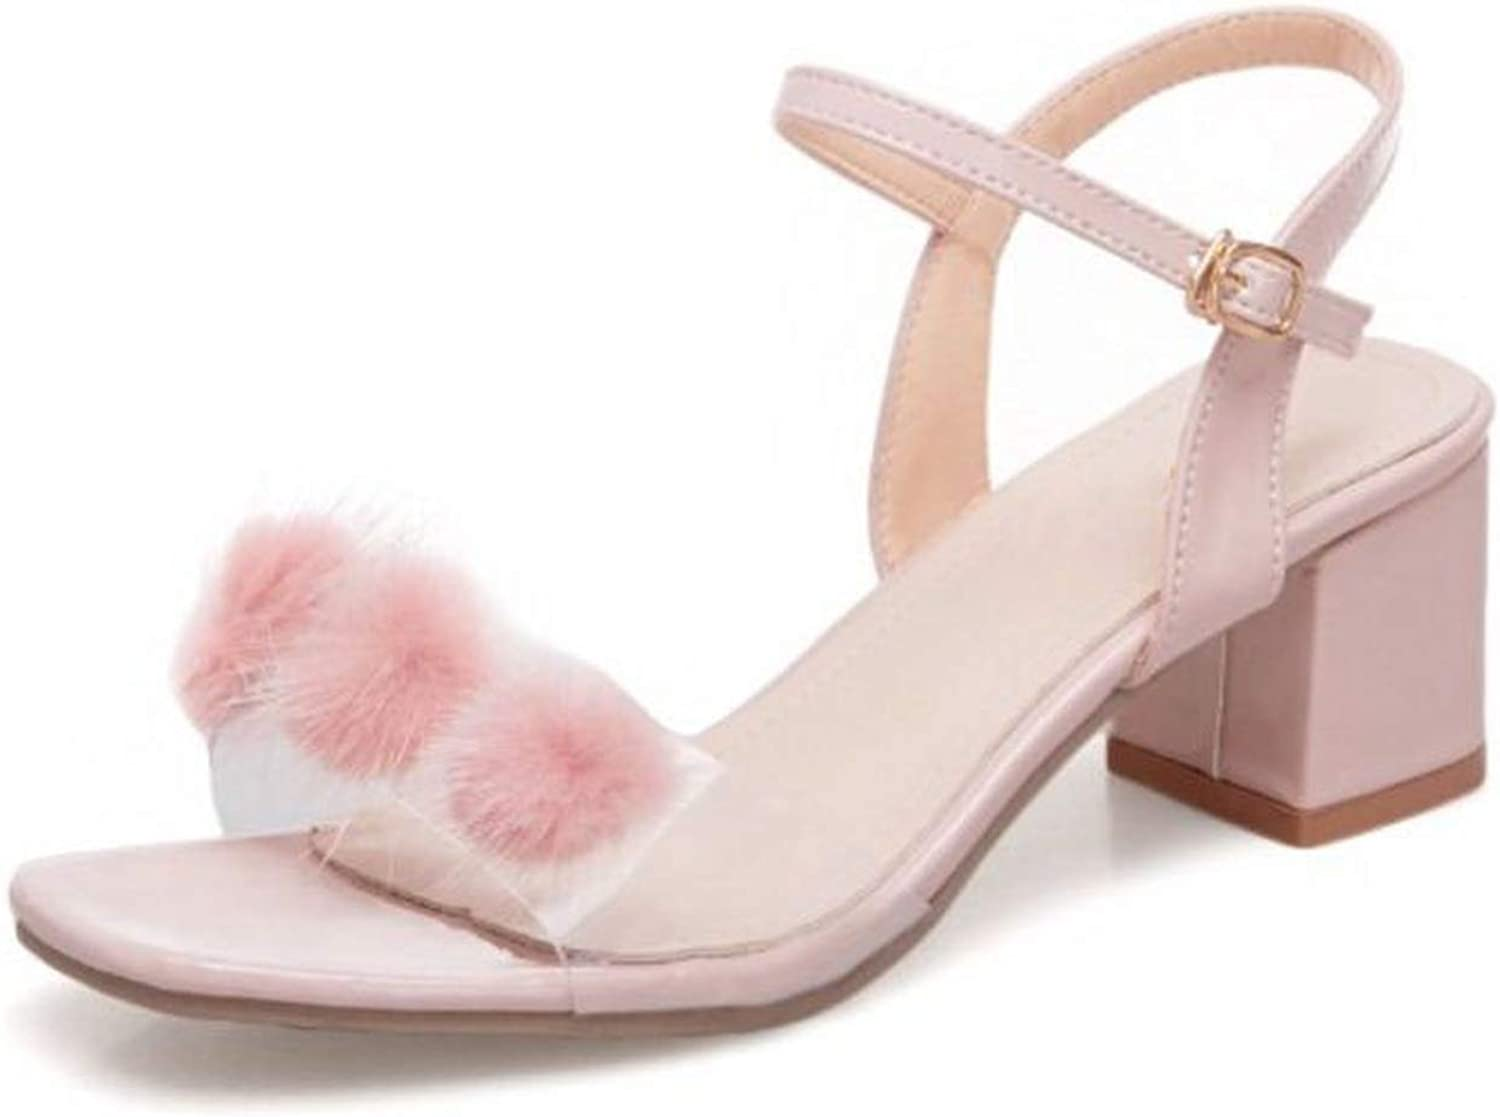 Meiguiyuan Women High Heel Sandal Open Toe Fur Buckle Thick Heel Sandals Sweet Korean shoes